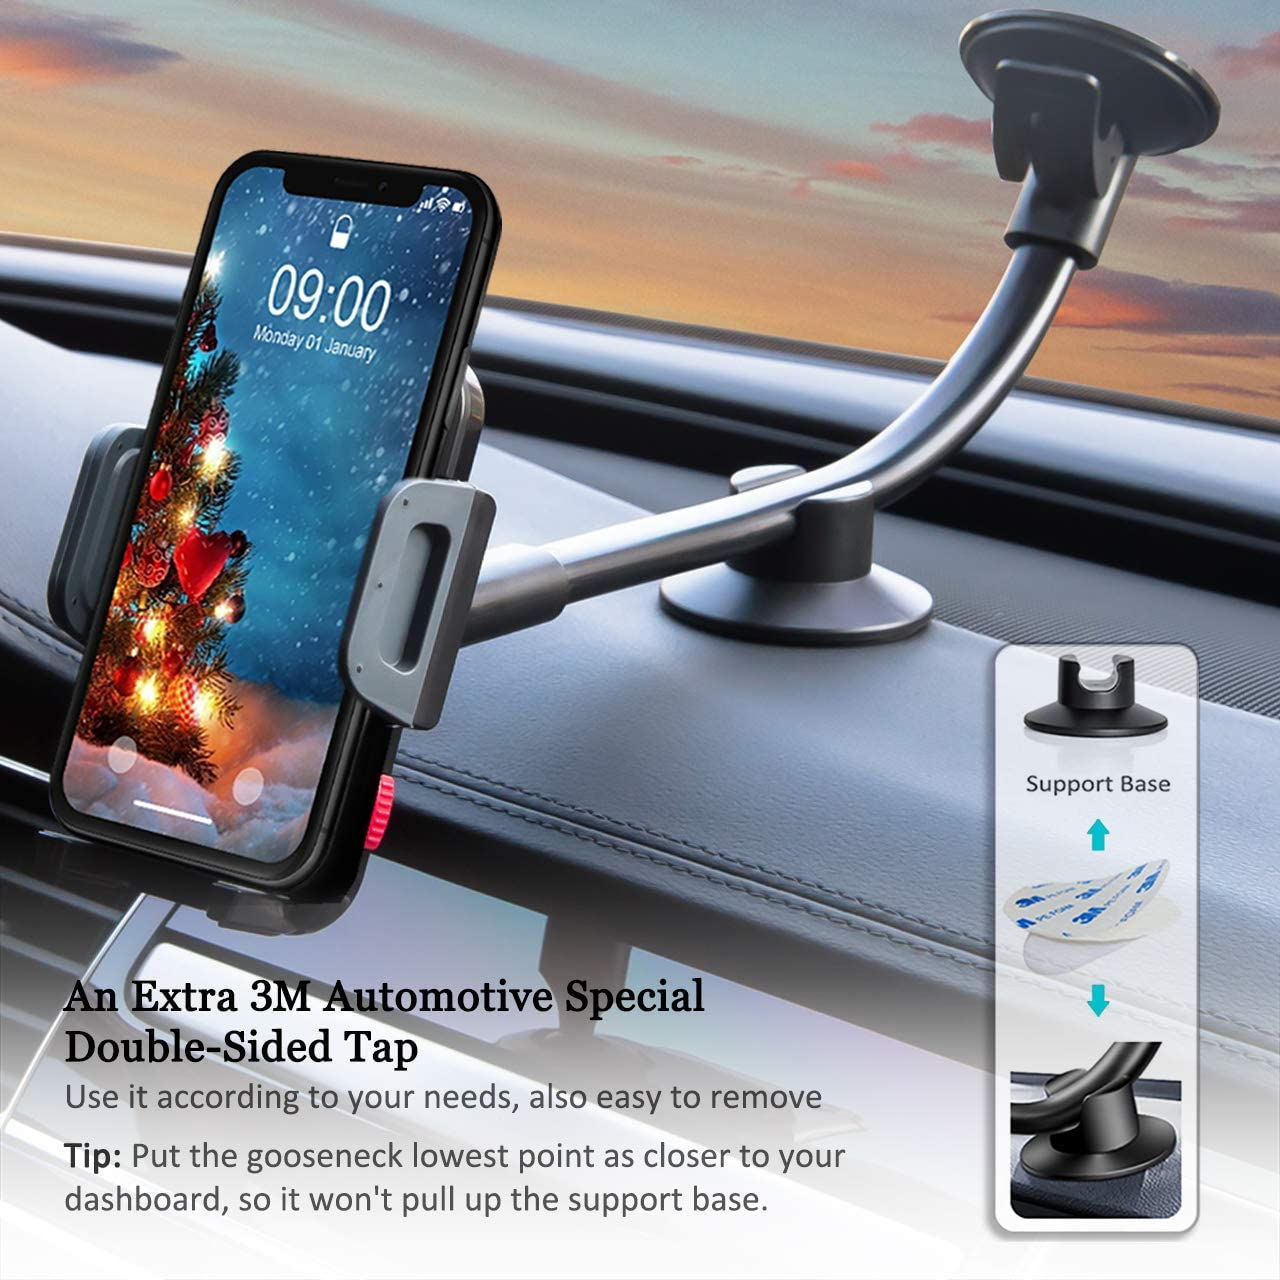 Nexus 5X//6P Samsung Galaxy S6 S5 LG HTC and Other Smartphones Universal Car Phone Mount Holder Windshield Long Arm Cell Phone Holder for iPhone 8//X//7//6S//6 Plus//5S//5